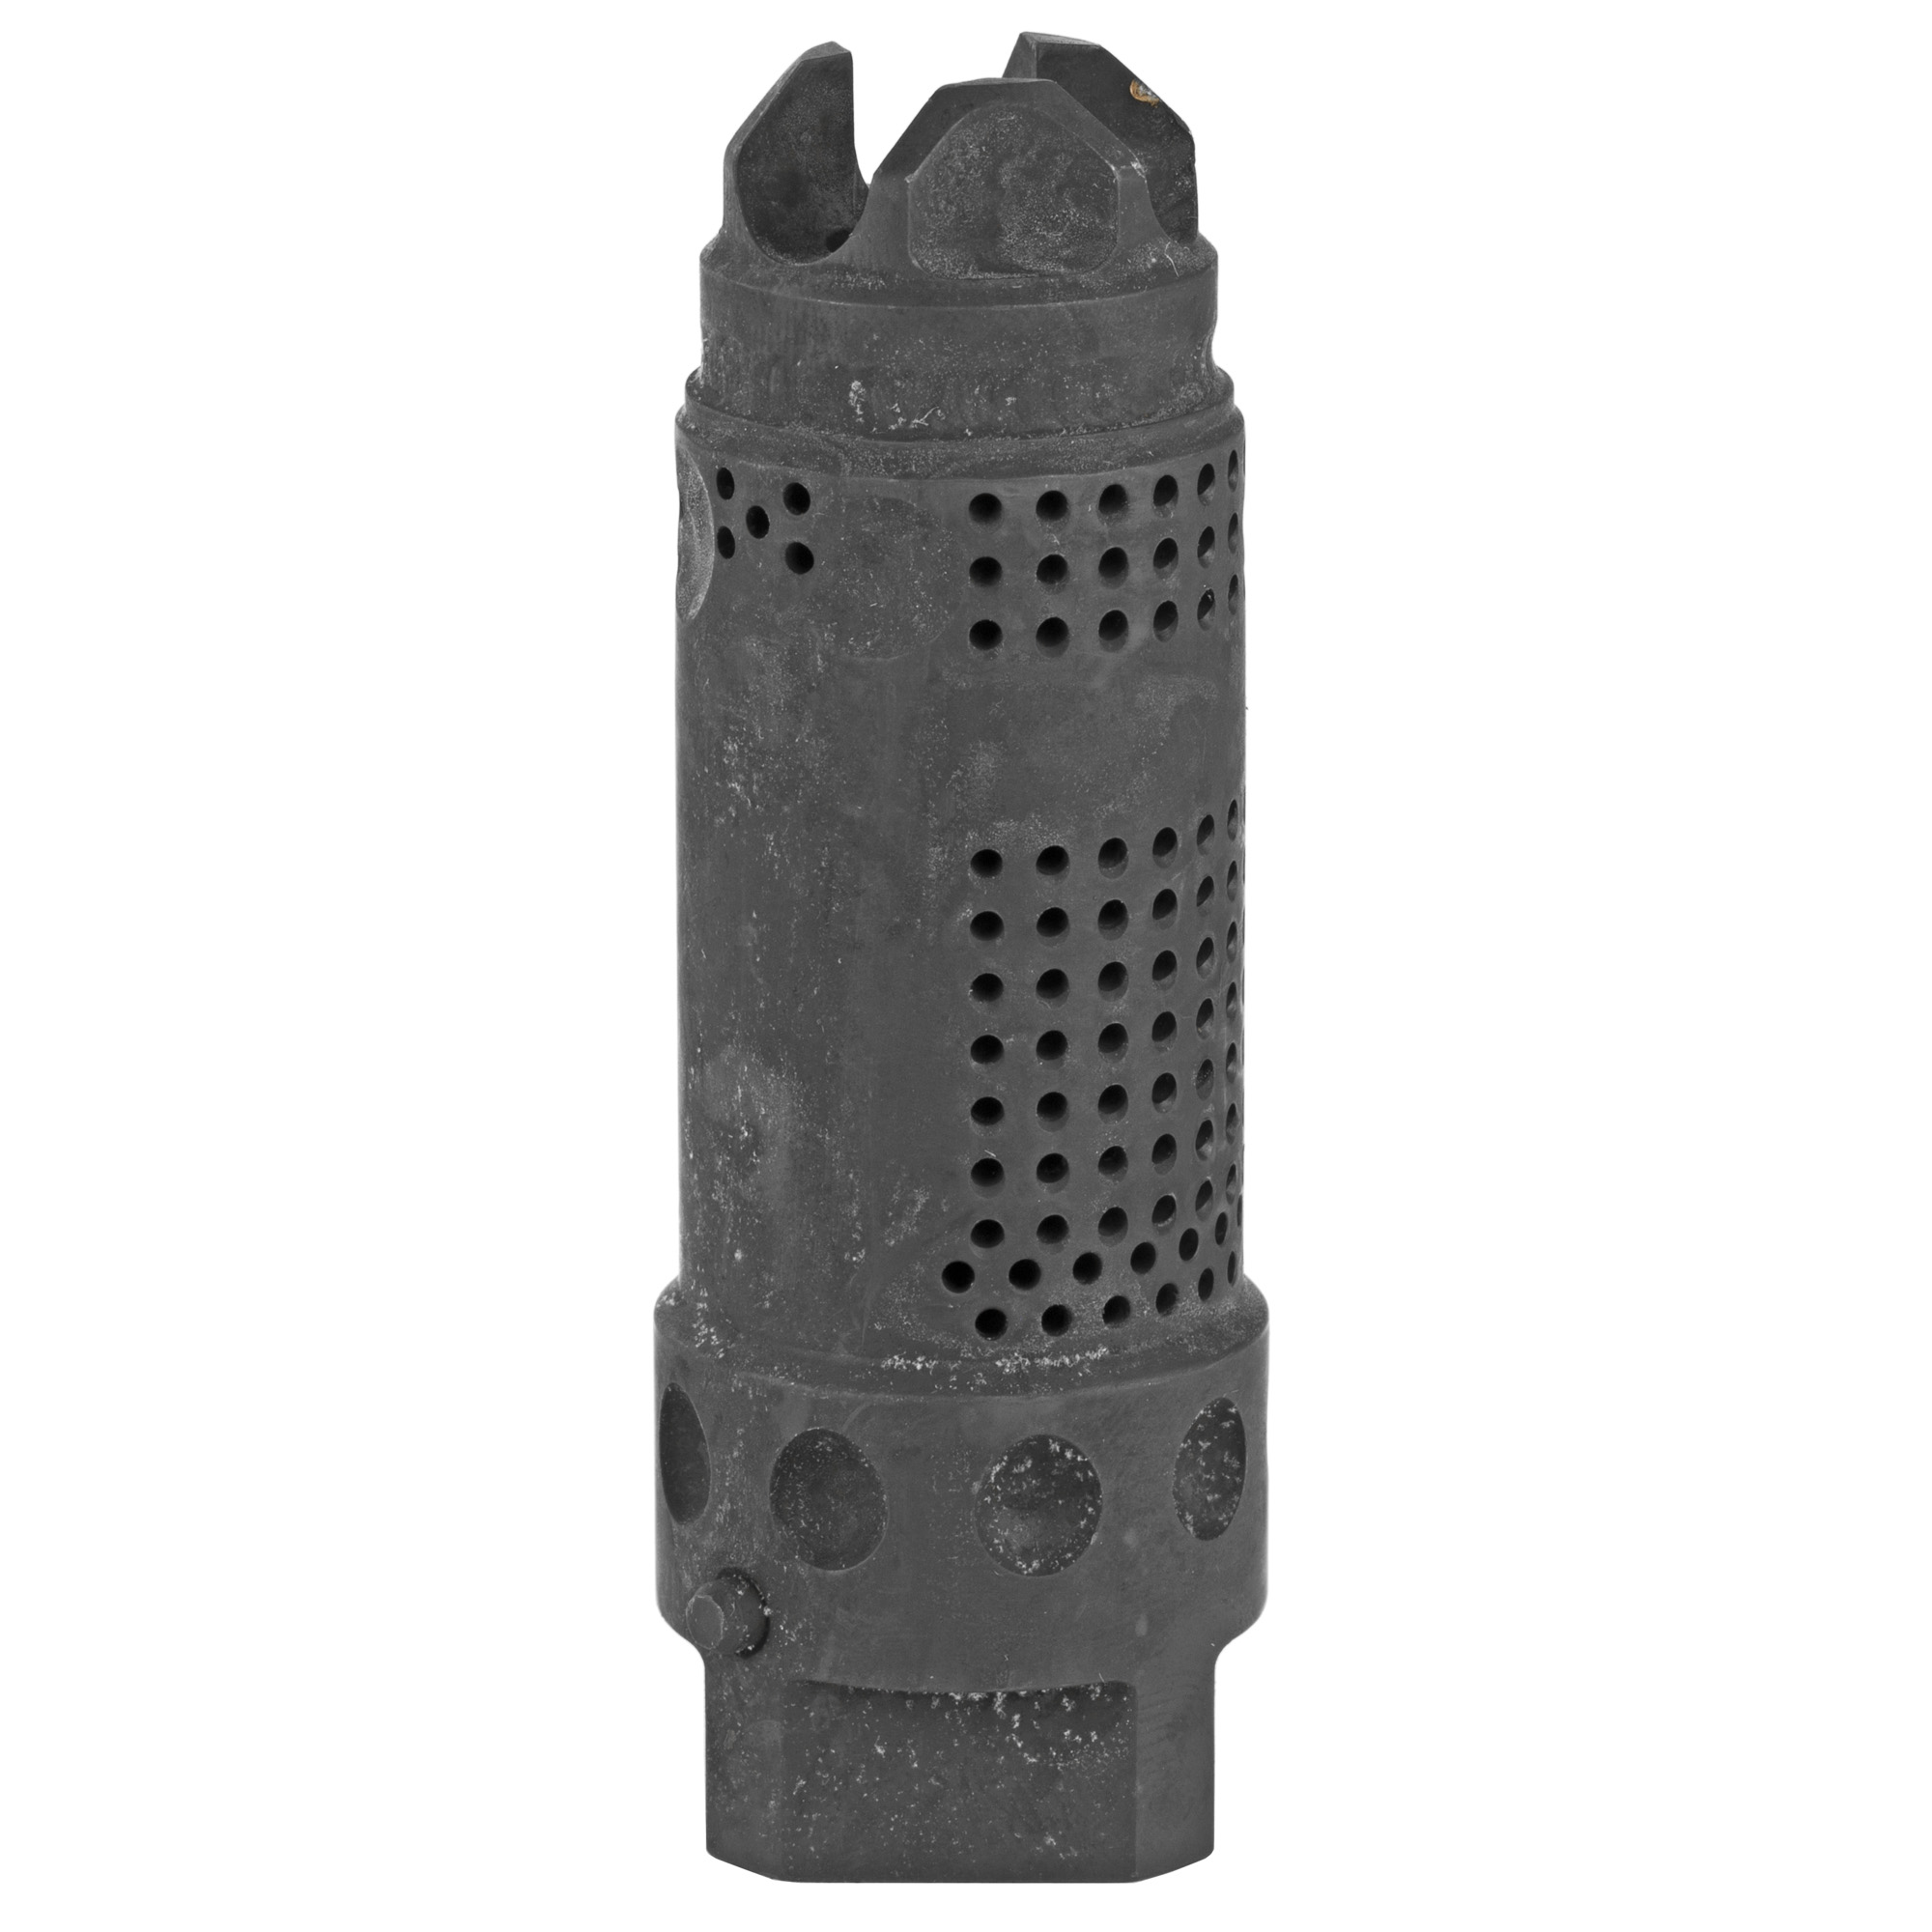 """The KAC 7.62 MAMS (Multi-Axis Muzzle Stability) Brake has been engineered to increase controllability"""" to significantly reduce felt recoil"""" and to help mitigate a rifle's flash signature as compared to traditional muzzle brake designs. The MAMS is a neutral bias brake that combats both muzzle rise and drift upon firing. Depending on the gun's barrel length"""" it can reduce felt recoil in a 7.62x51mm gun by as much as 52 percent. The 7.62 MAMS is compatible with KAC's Quick Disconnect Coupling (QDC) 7.62mm sound suppressor line"""" and comes complete with a 7-piece shim kit and installation instructions."""